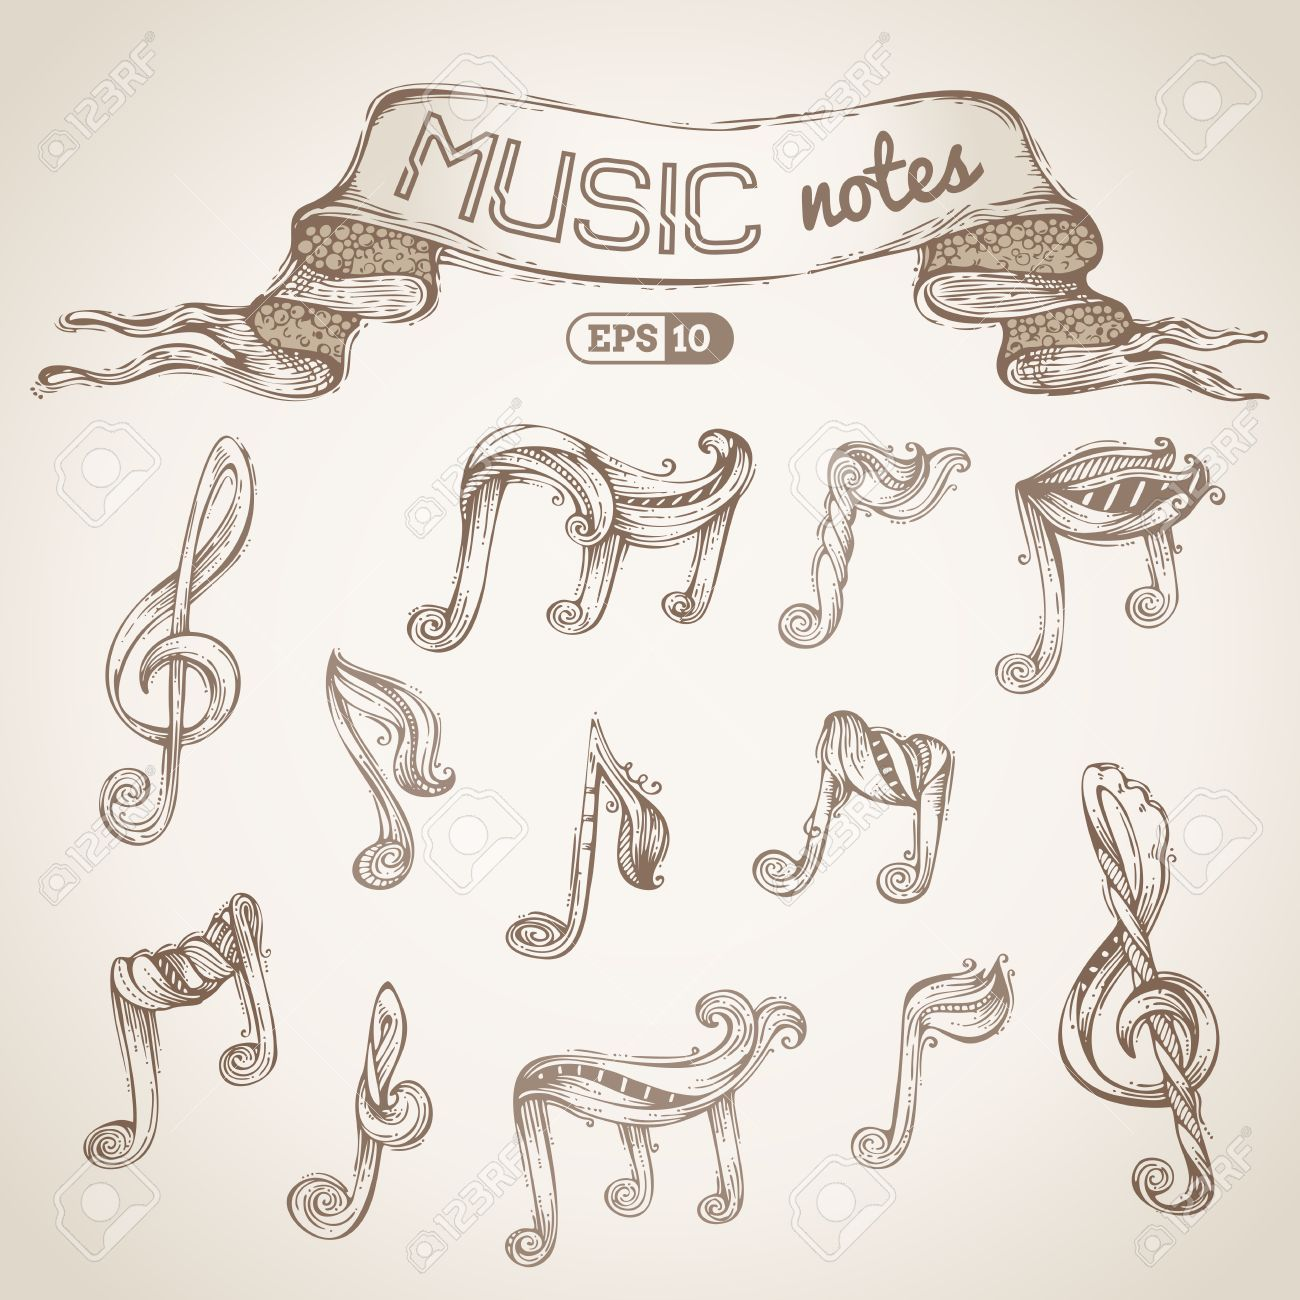 1300x1300 Vector Hand drawn Sketch. Music Notes And Treble Clefs. Royalty